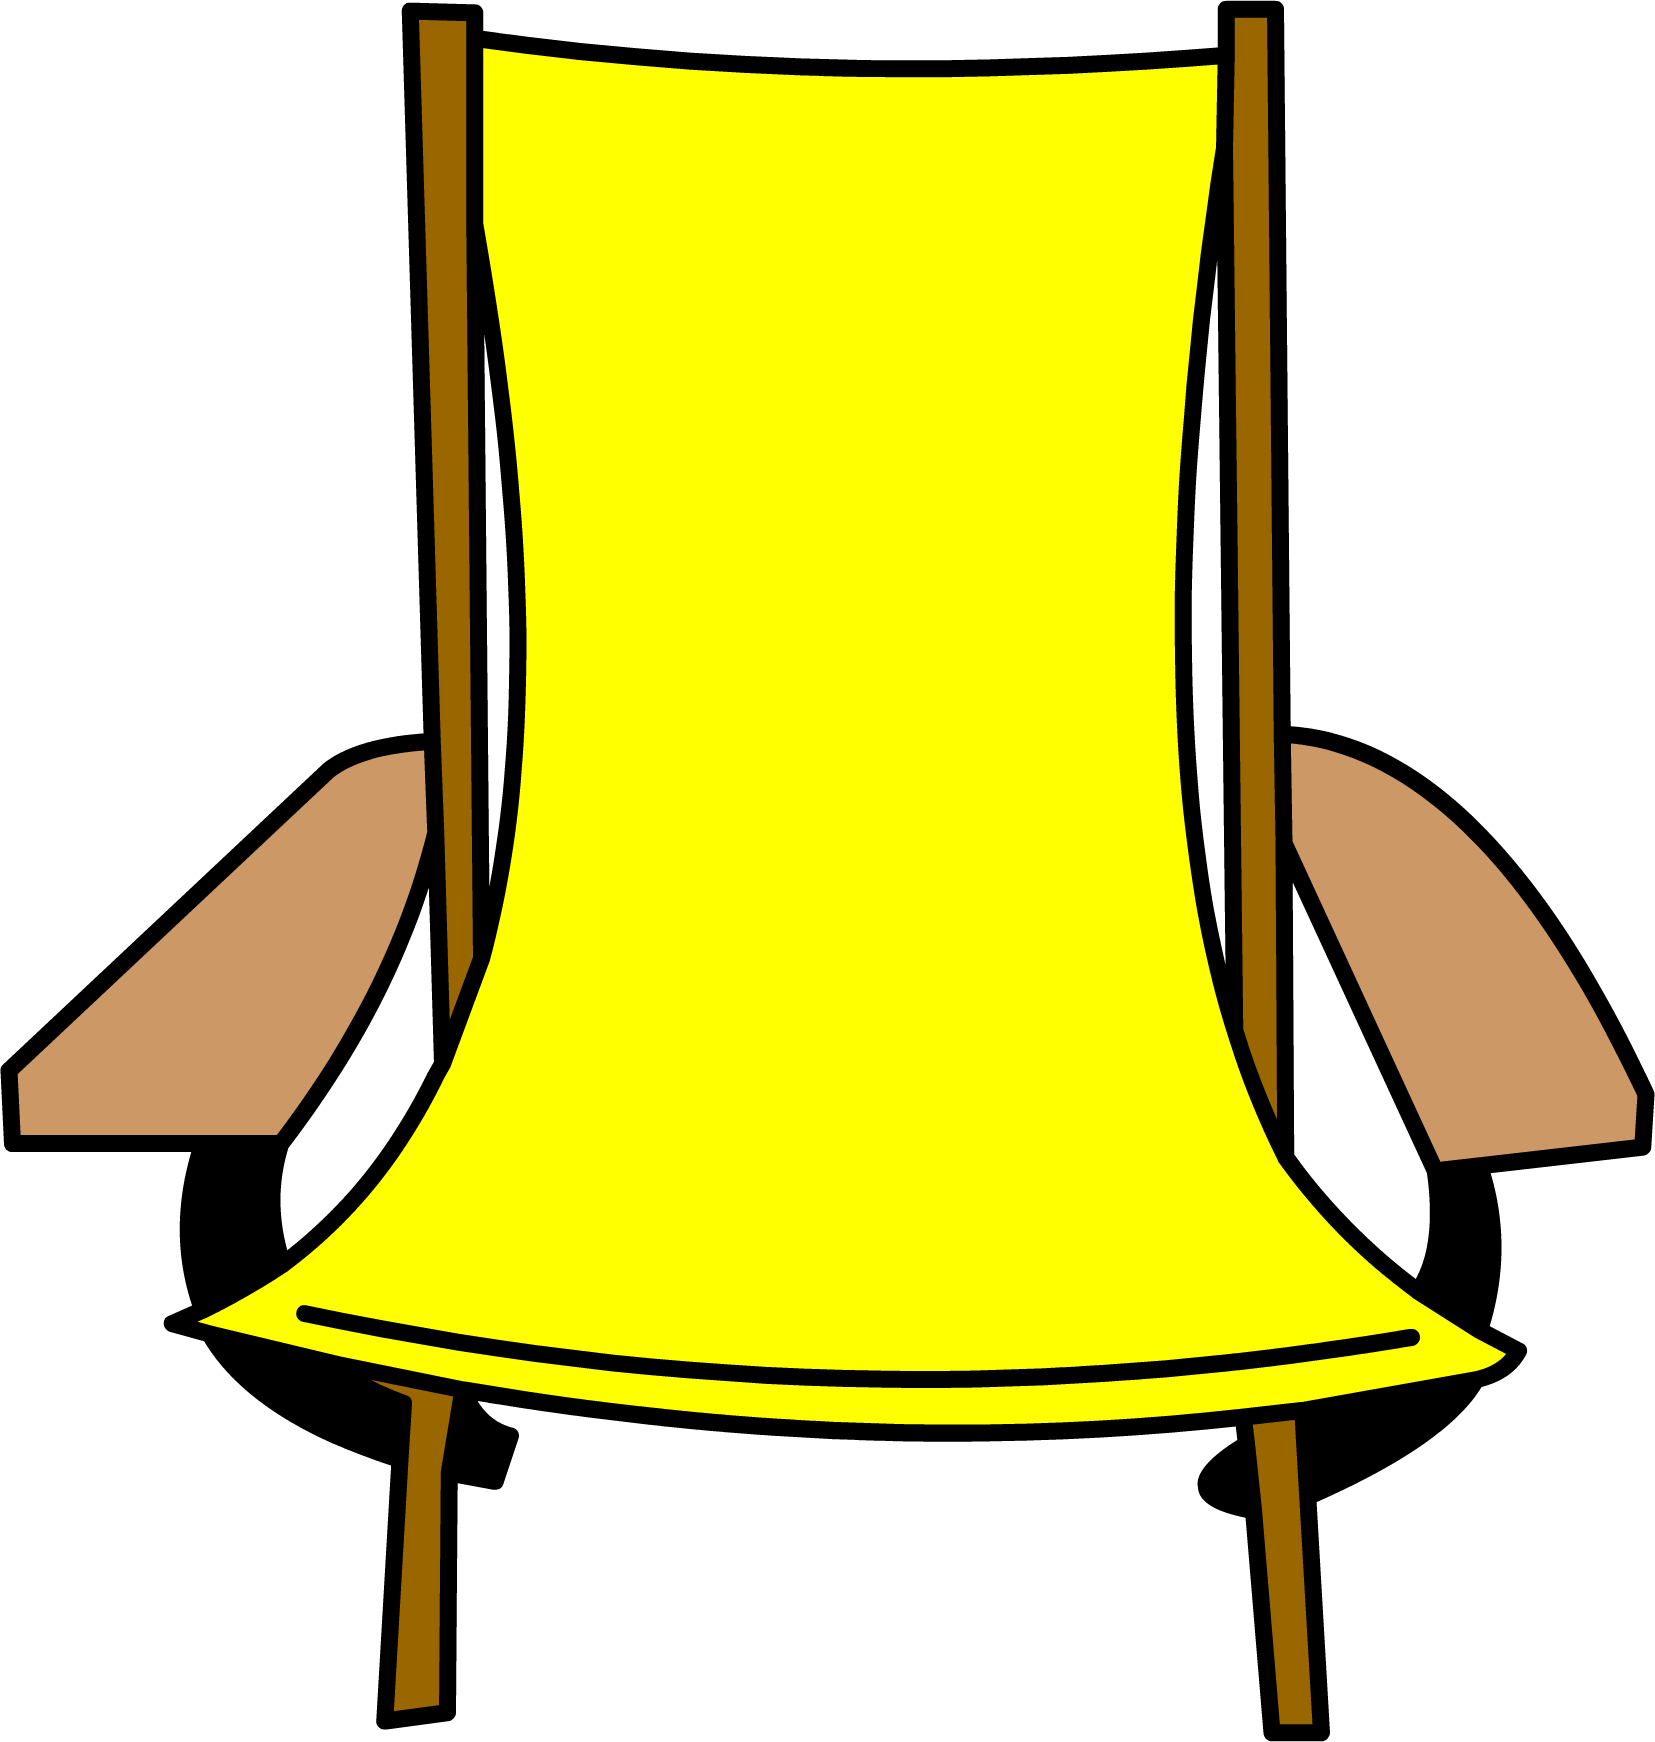 folding chair club penguin wiki fandom powered by wikia